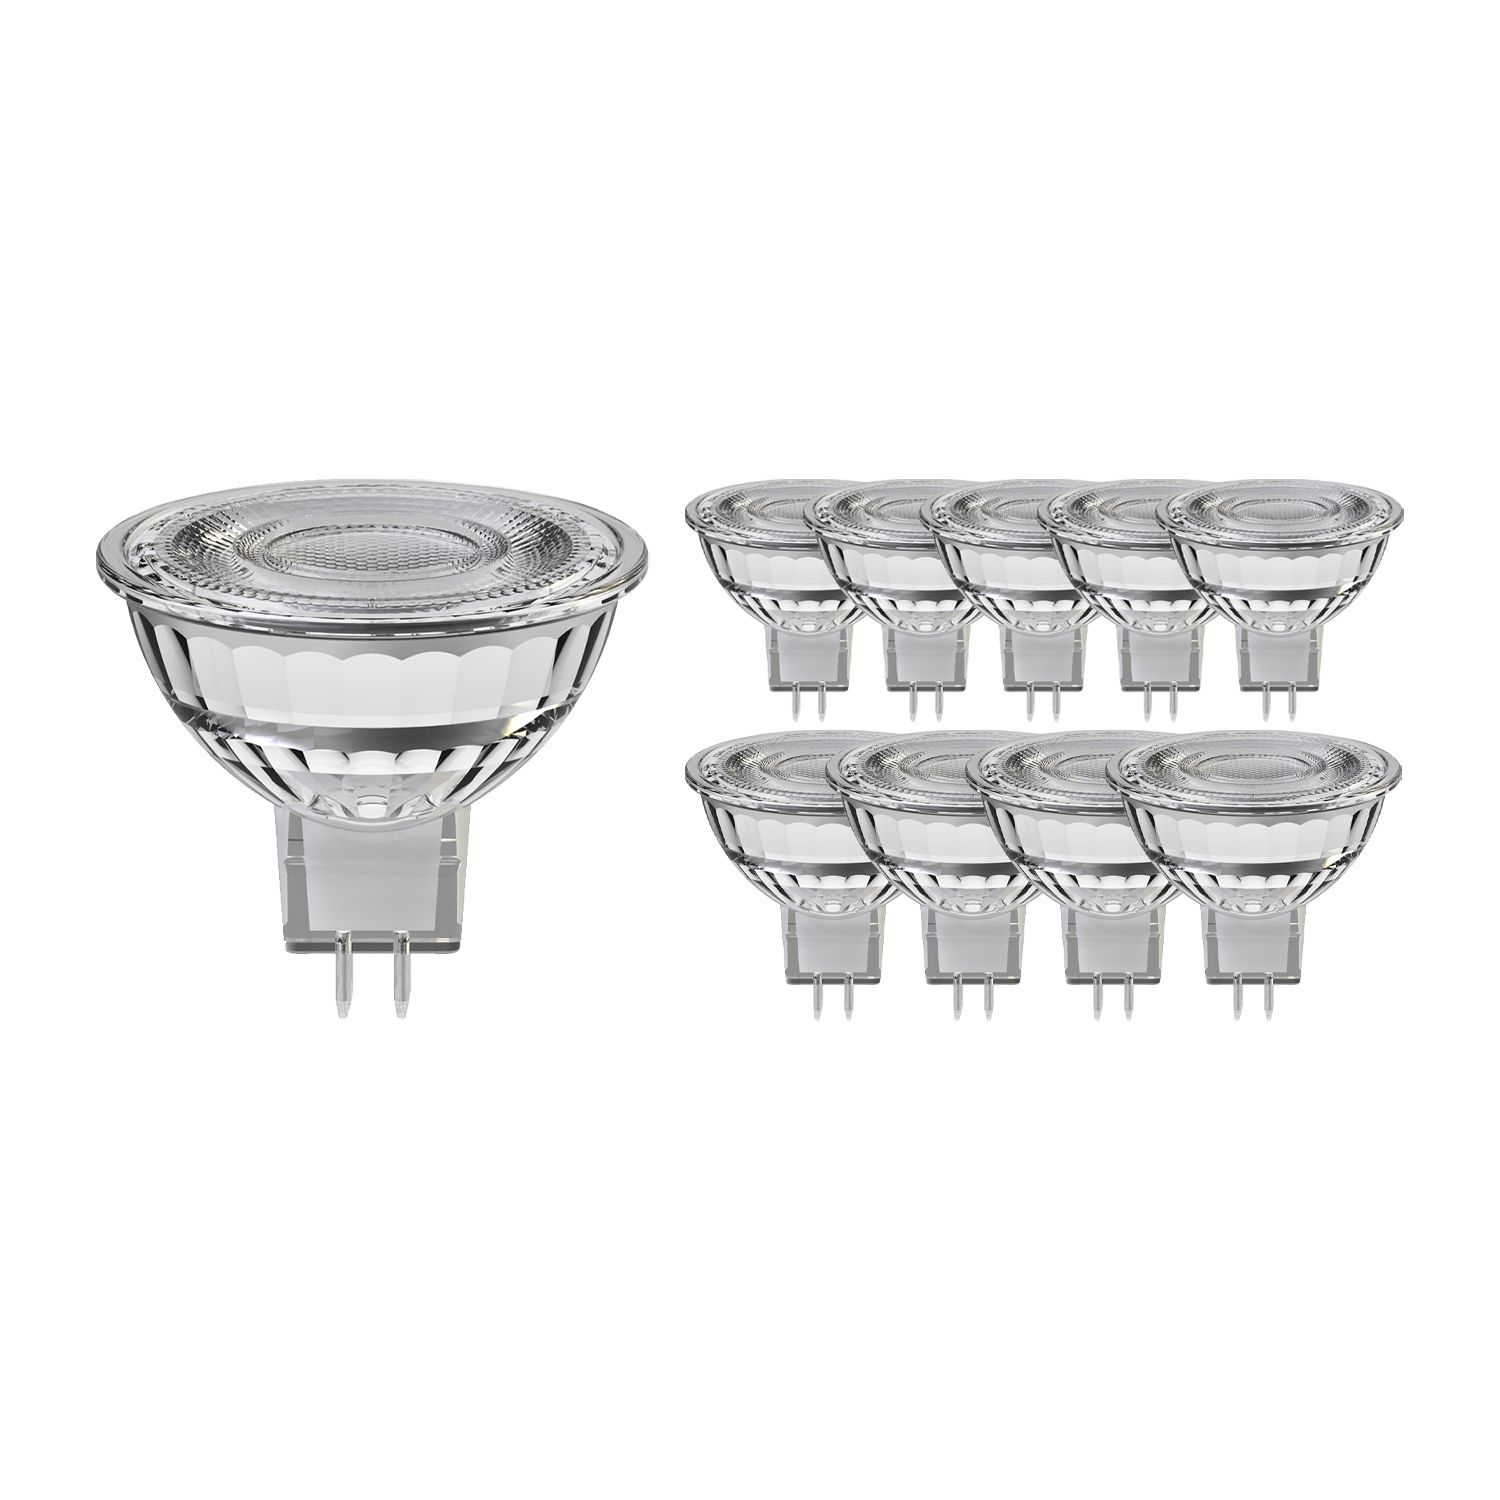 Lot 10x Noxion Spot LED GU5.3 8W 827 60D 660lm | Dimmable - Blanc Très Chaud - Substitut 50W